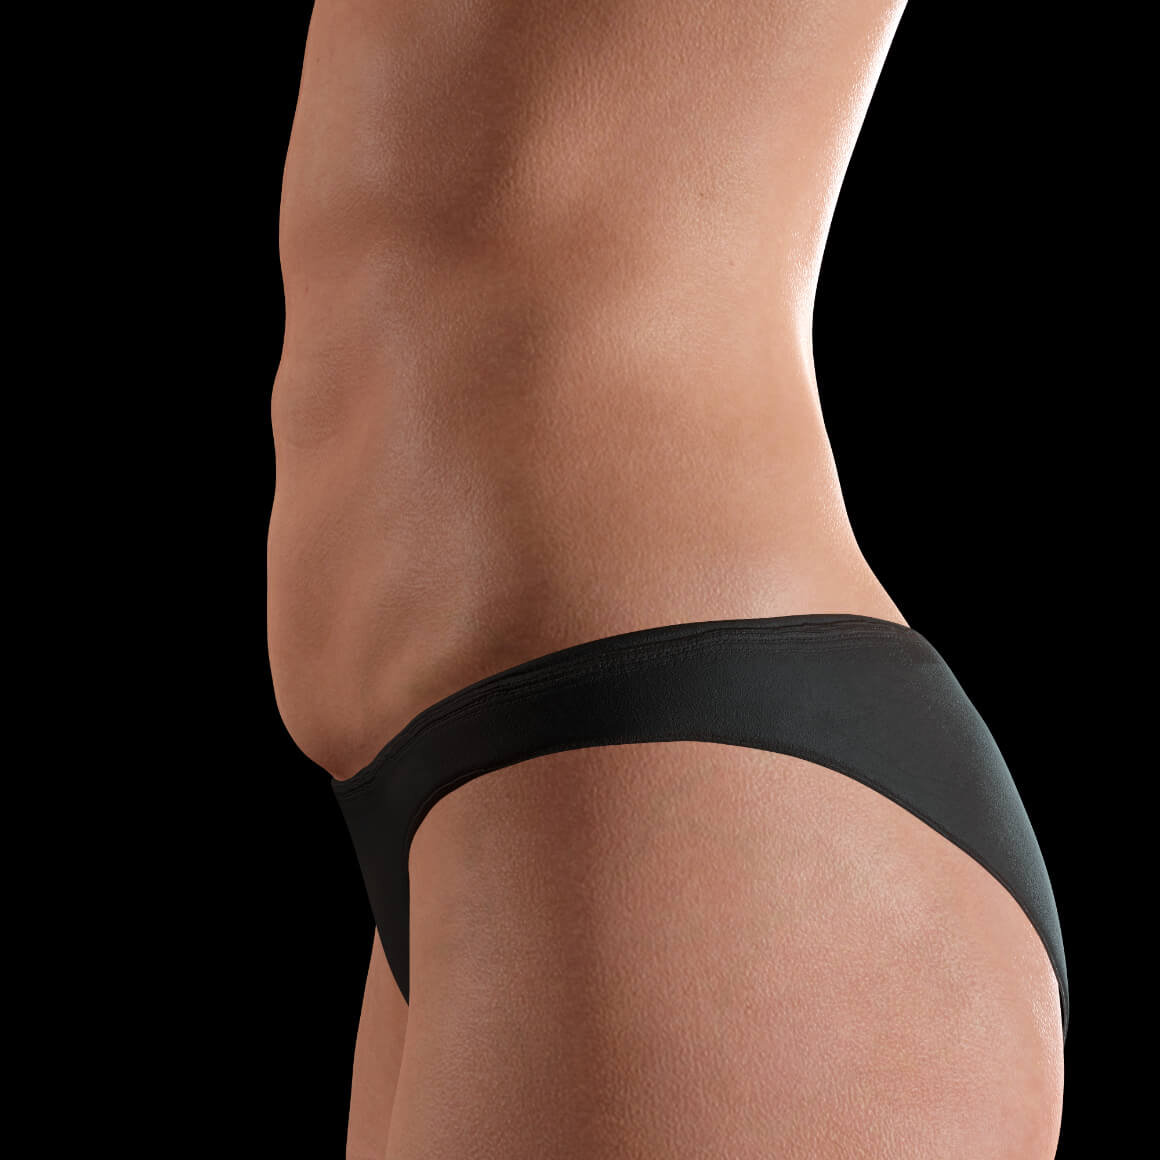 Female patient at Clinique Chloé positioned sideways after Tight Sculpting laser treatments for body skin tightening